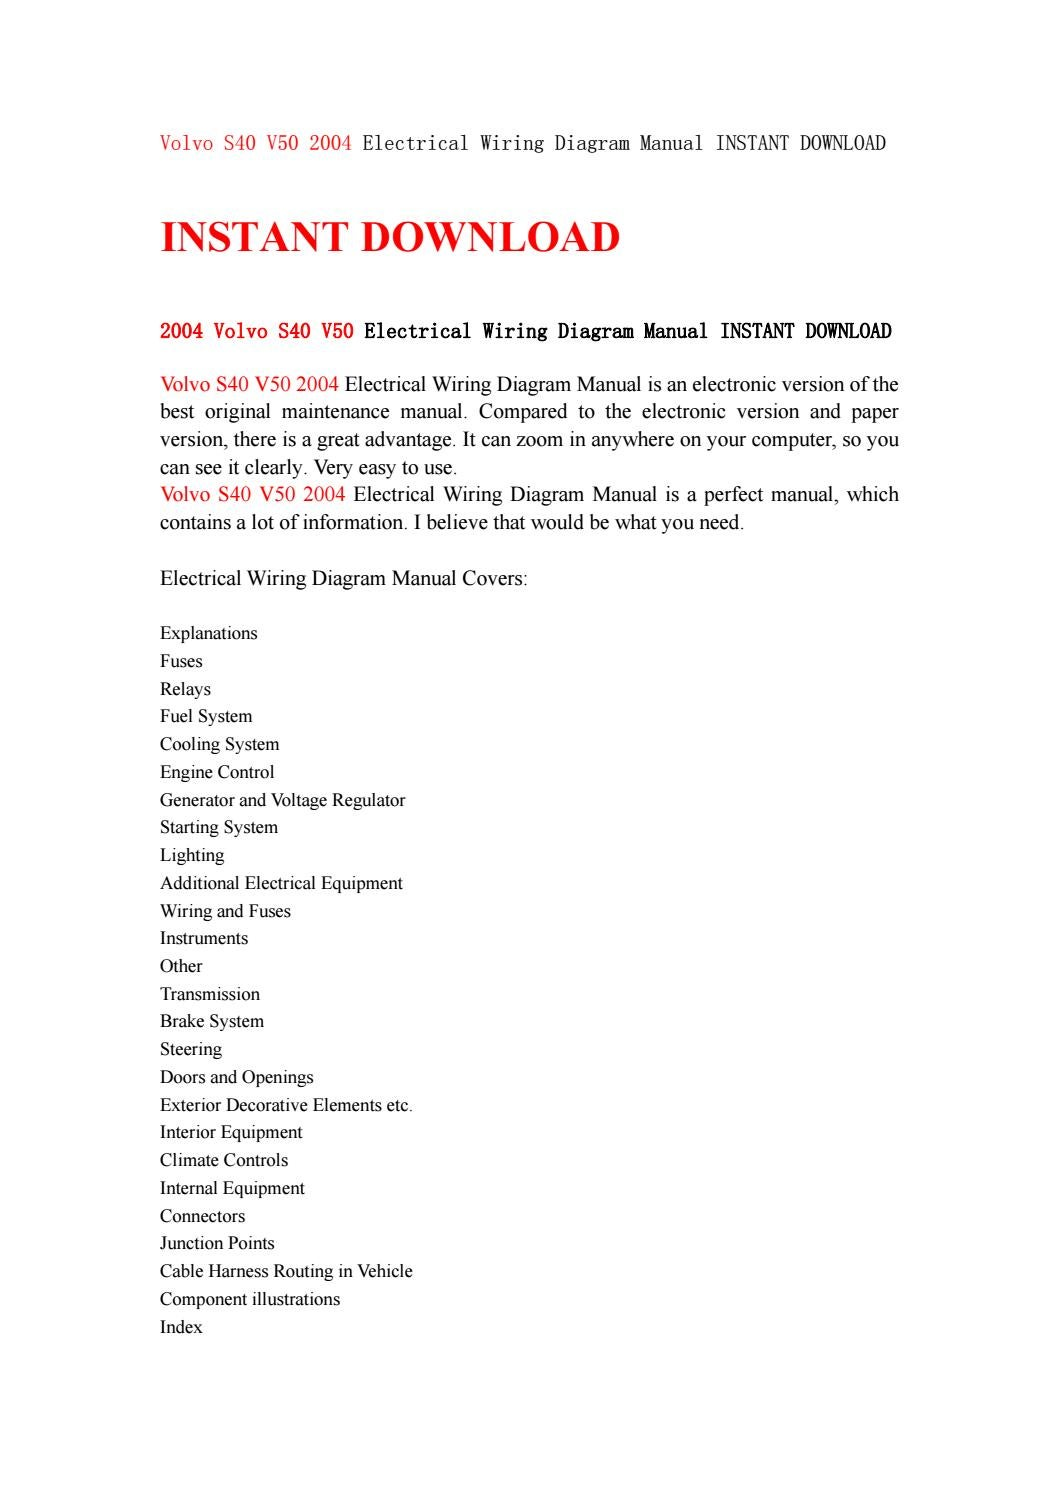 hight resolution of volvo s40 v50 2004 electrical wiring diagram manual instant download by kjjsemfmse issuu